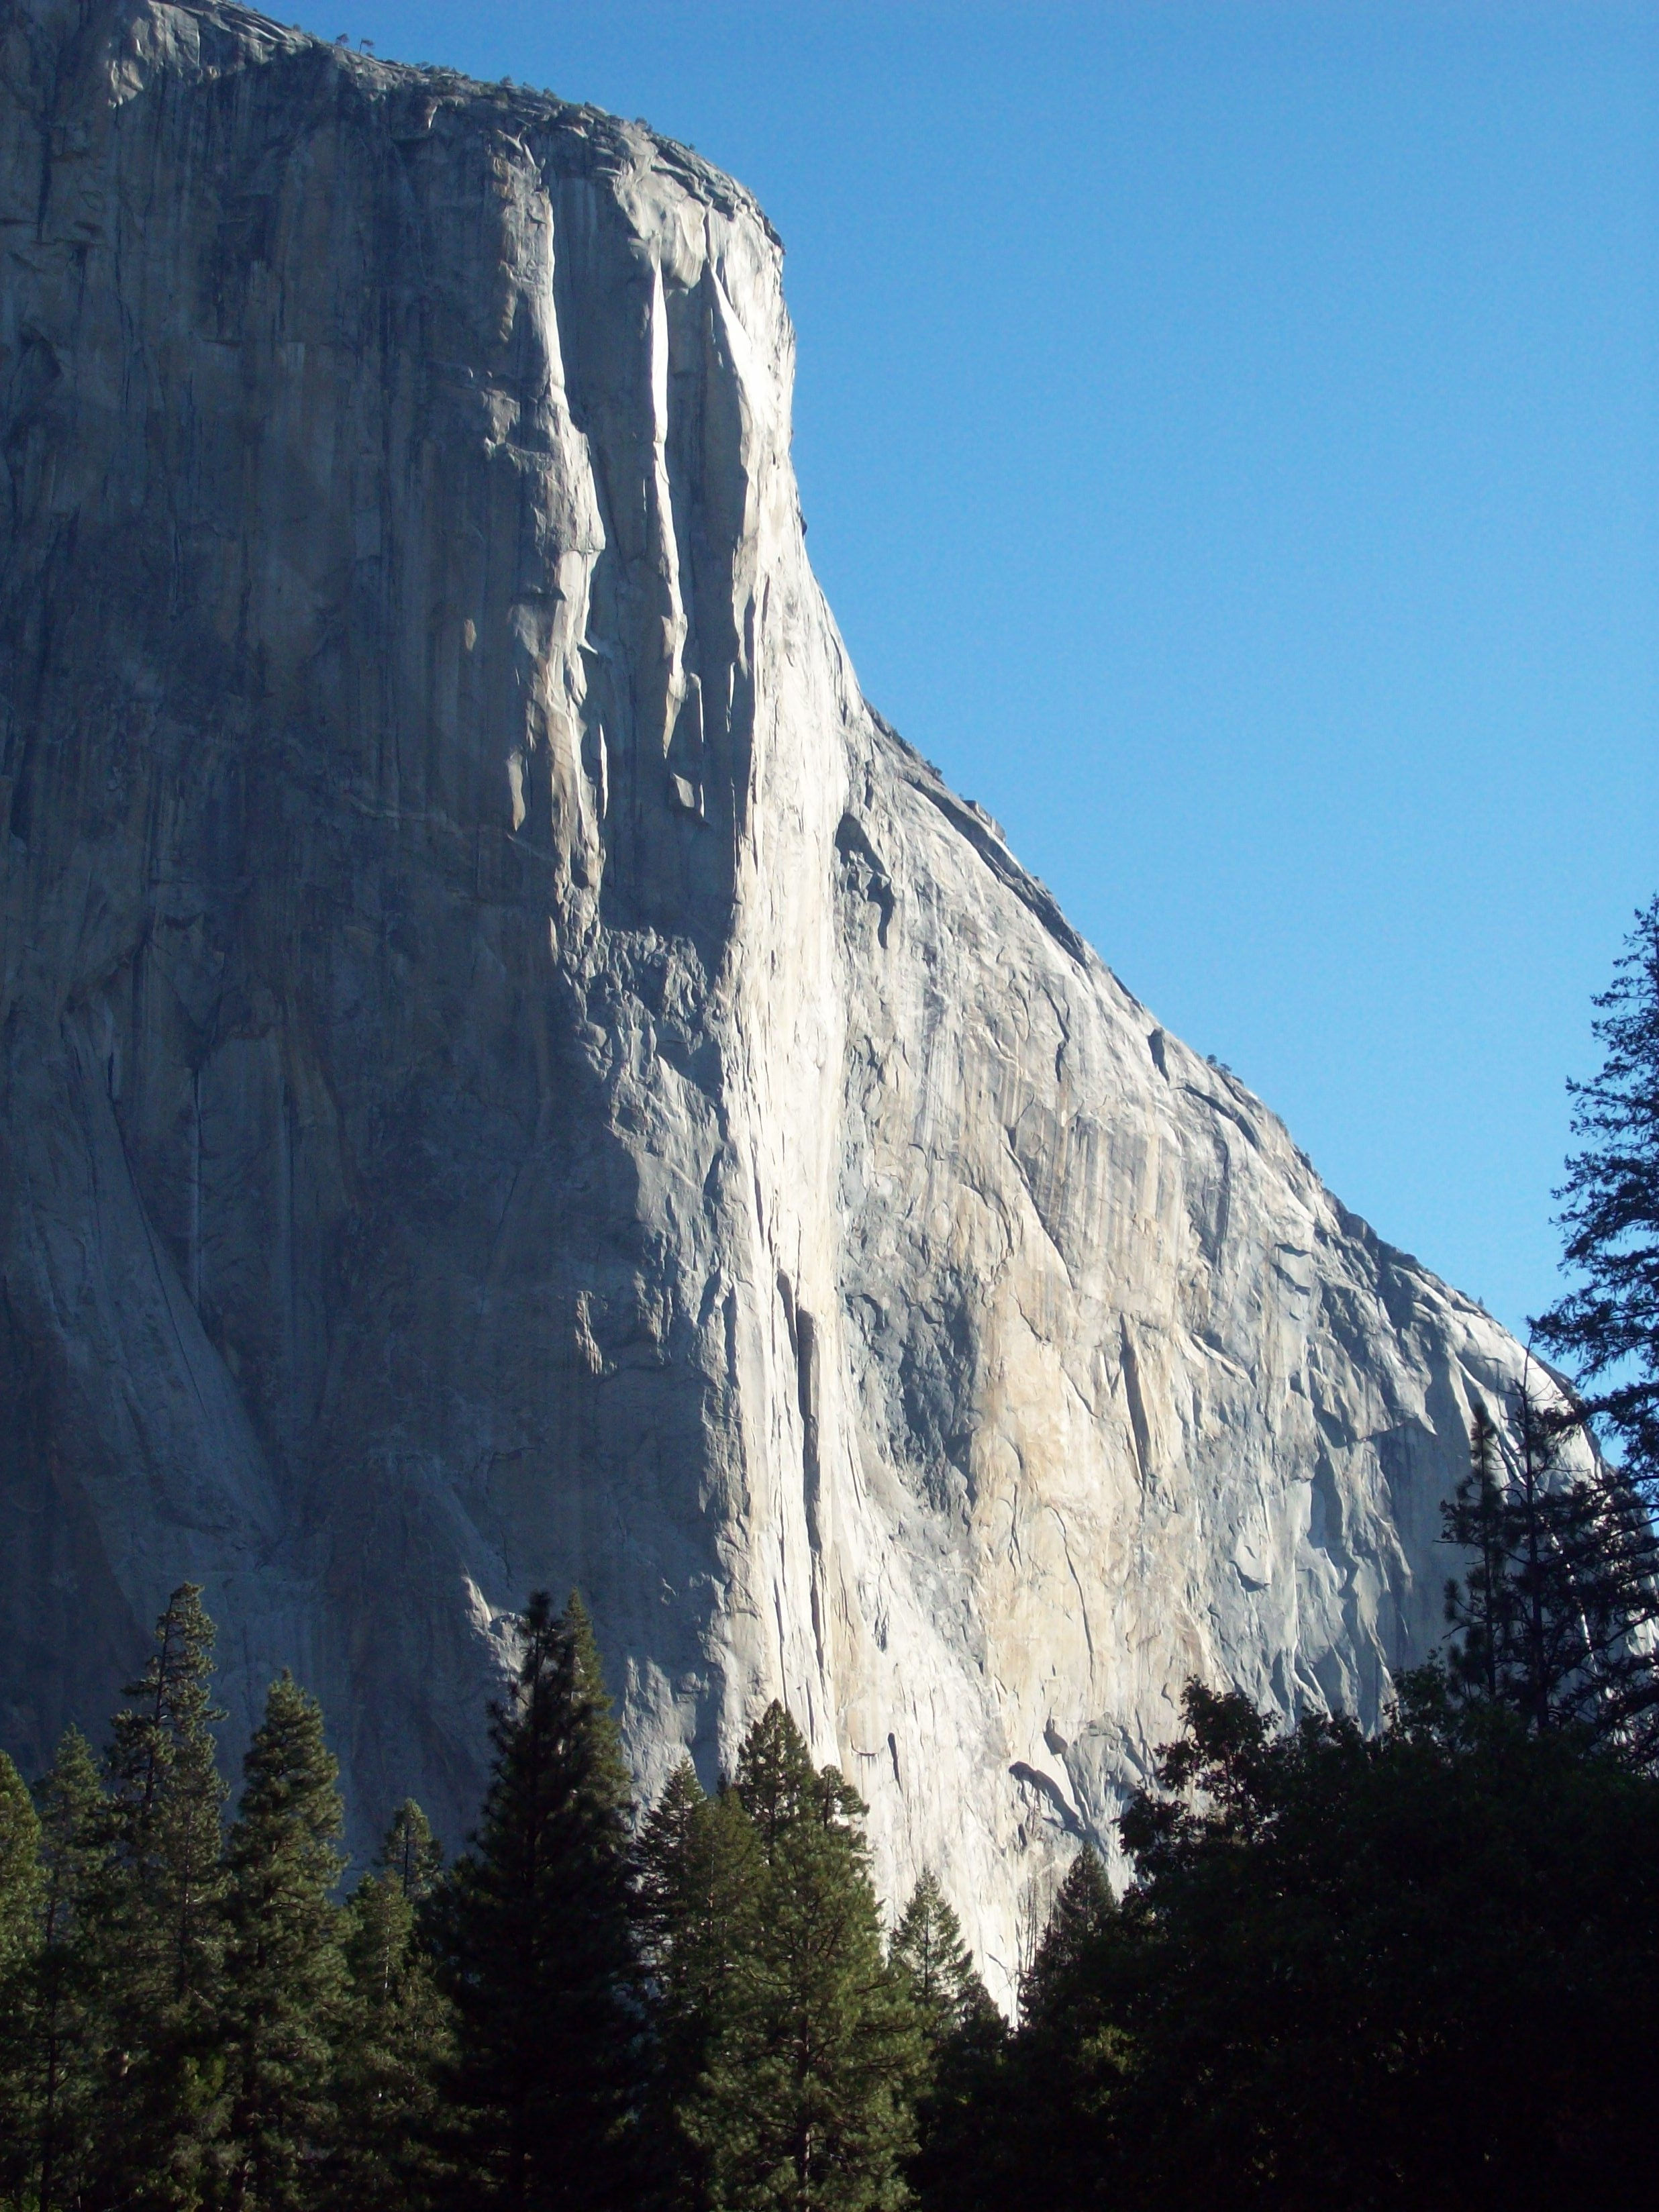 3,000ft El Capitan. The Nose route roughly follows the line between shadow and light.